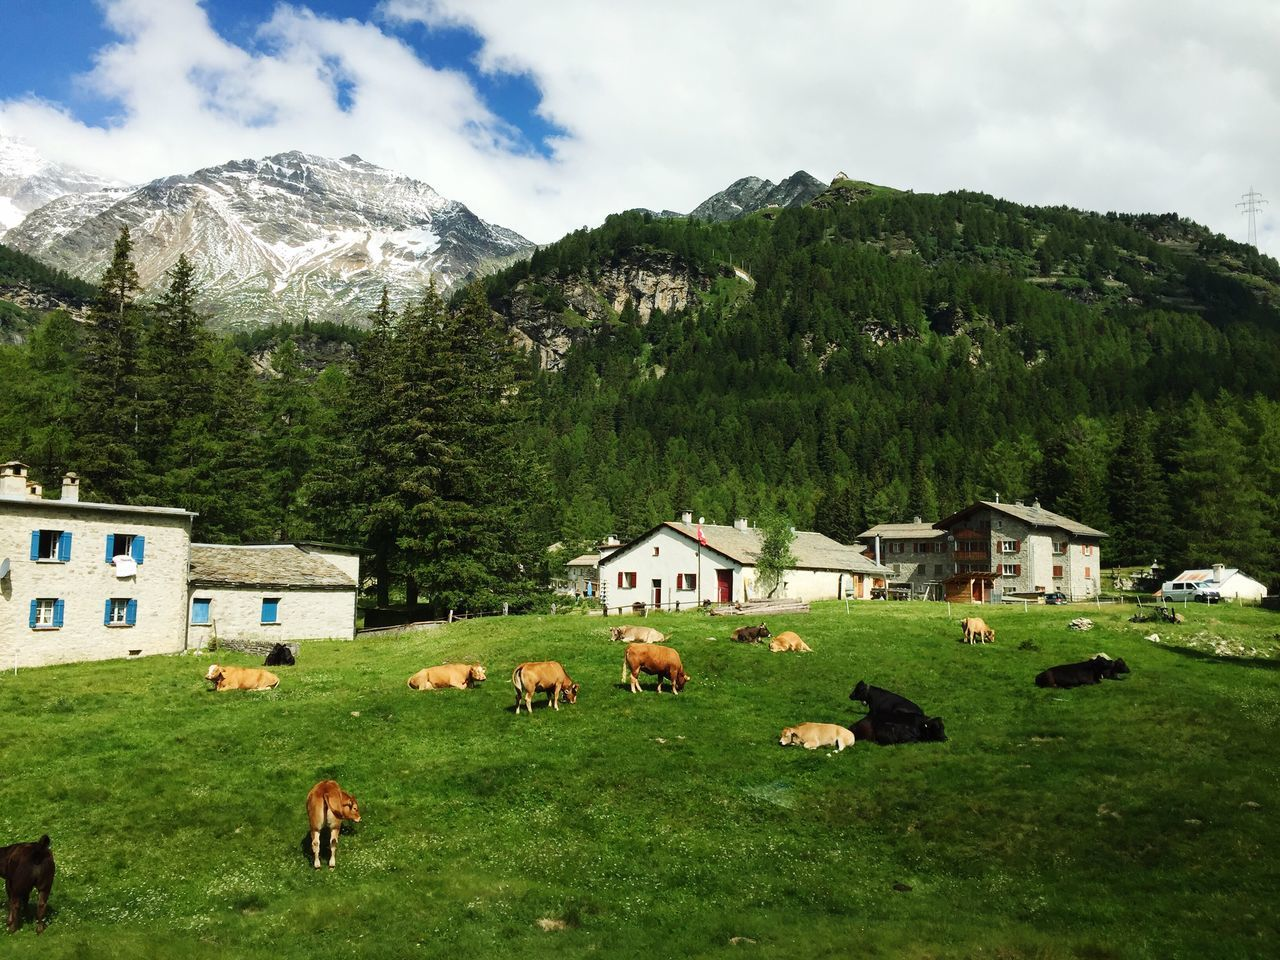 mountain, building exterior, nature, architecture, field, mountain range, grass, built structure, day, sky, landscape, animal themes, green color, livestock, large group of animals, no people, outdoors, scenics, beauty in nature, domestic animals, tree, mammal